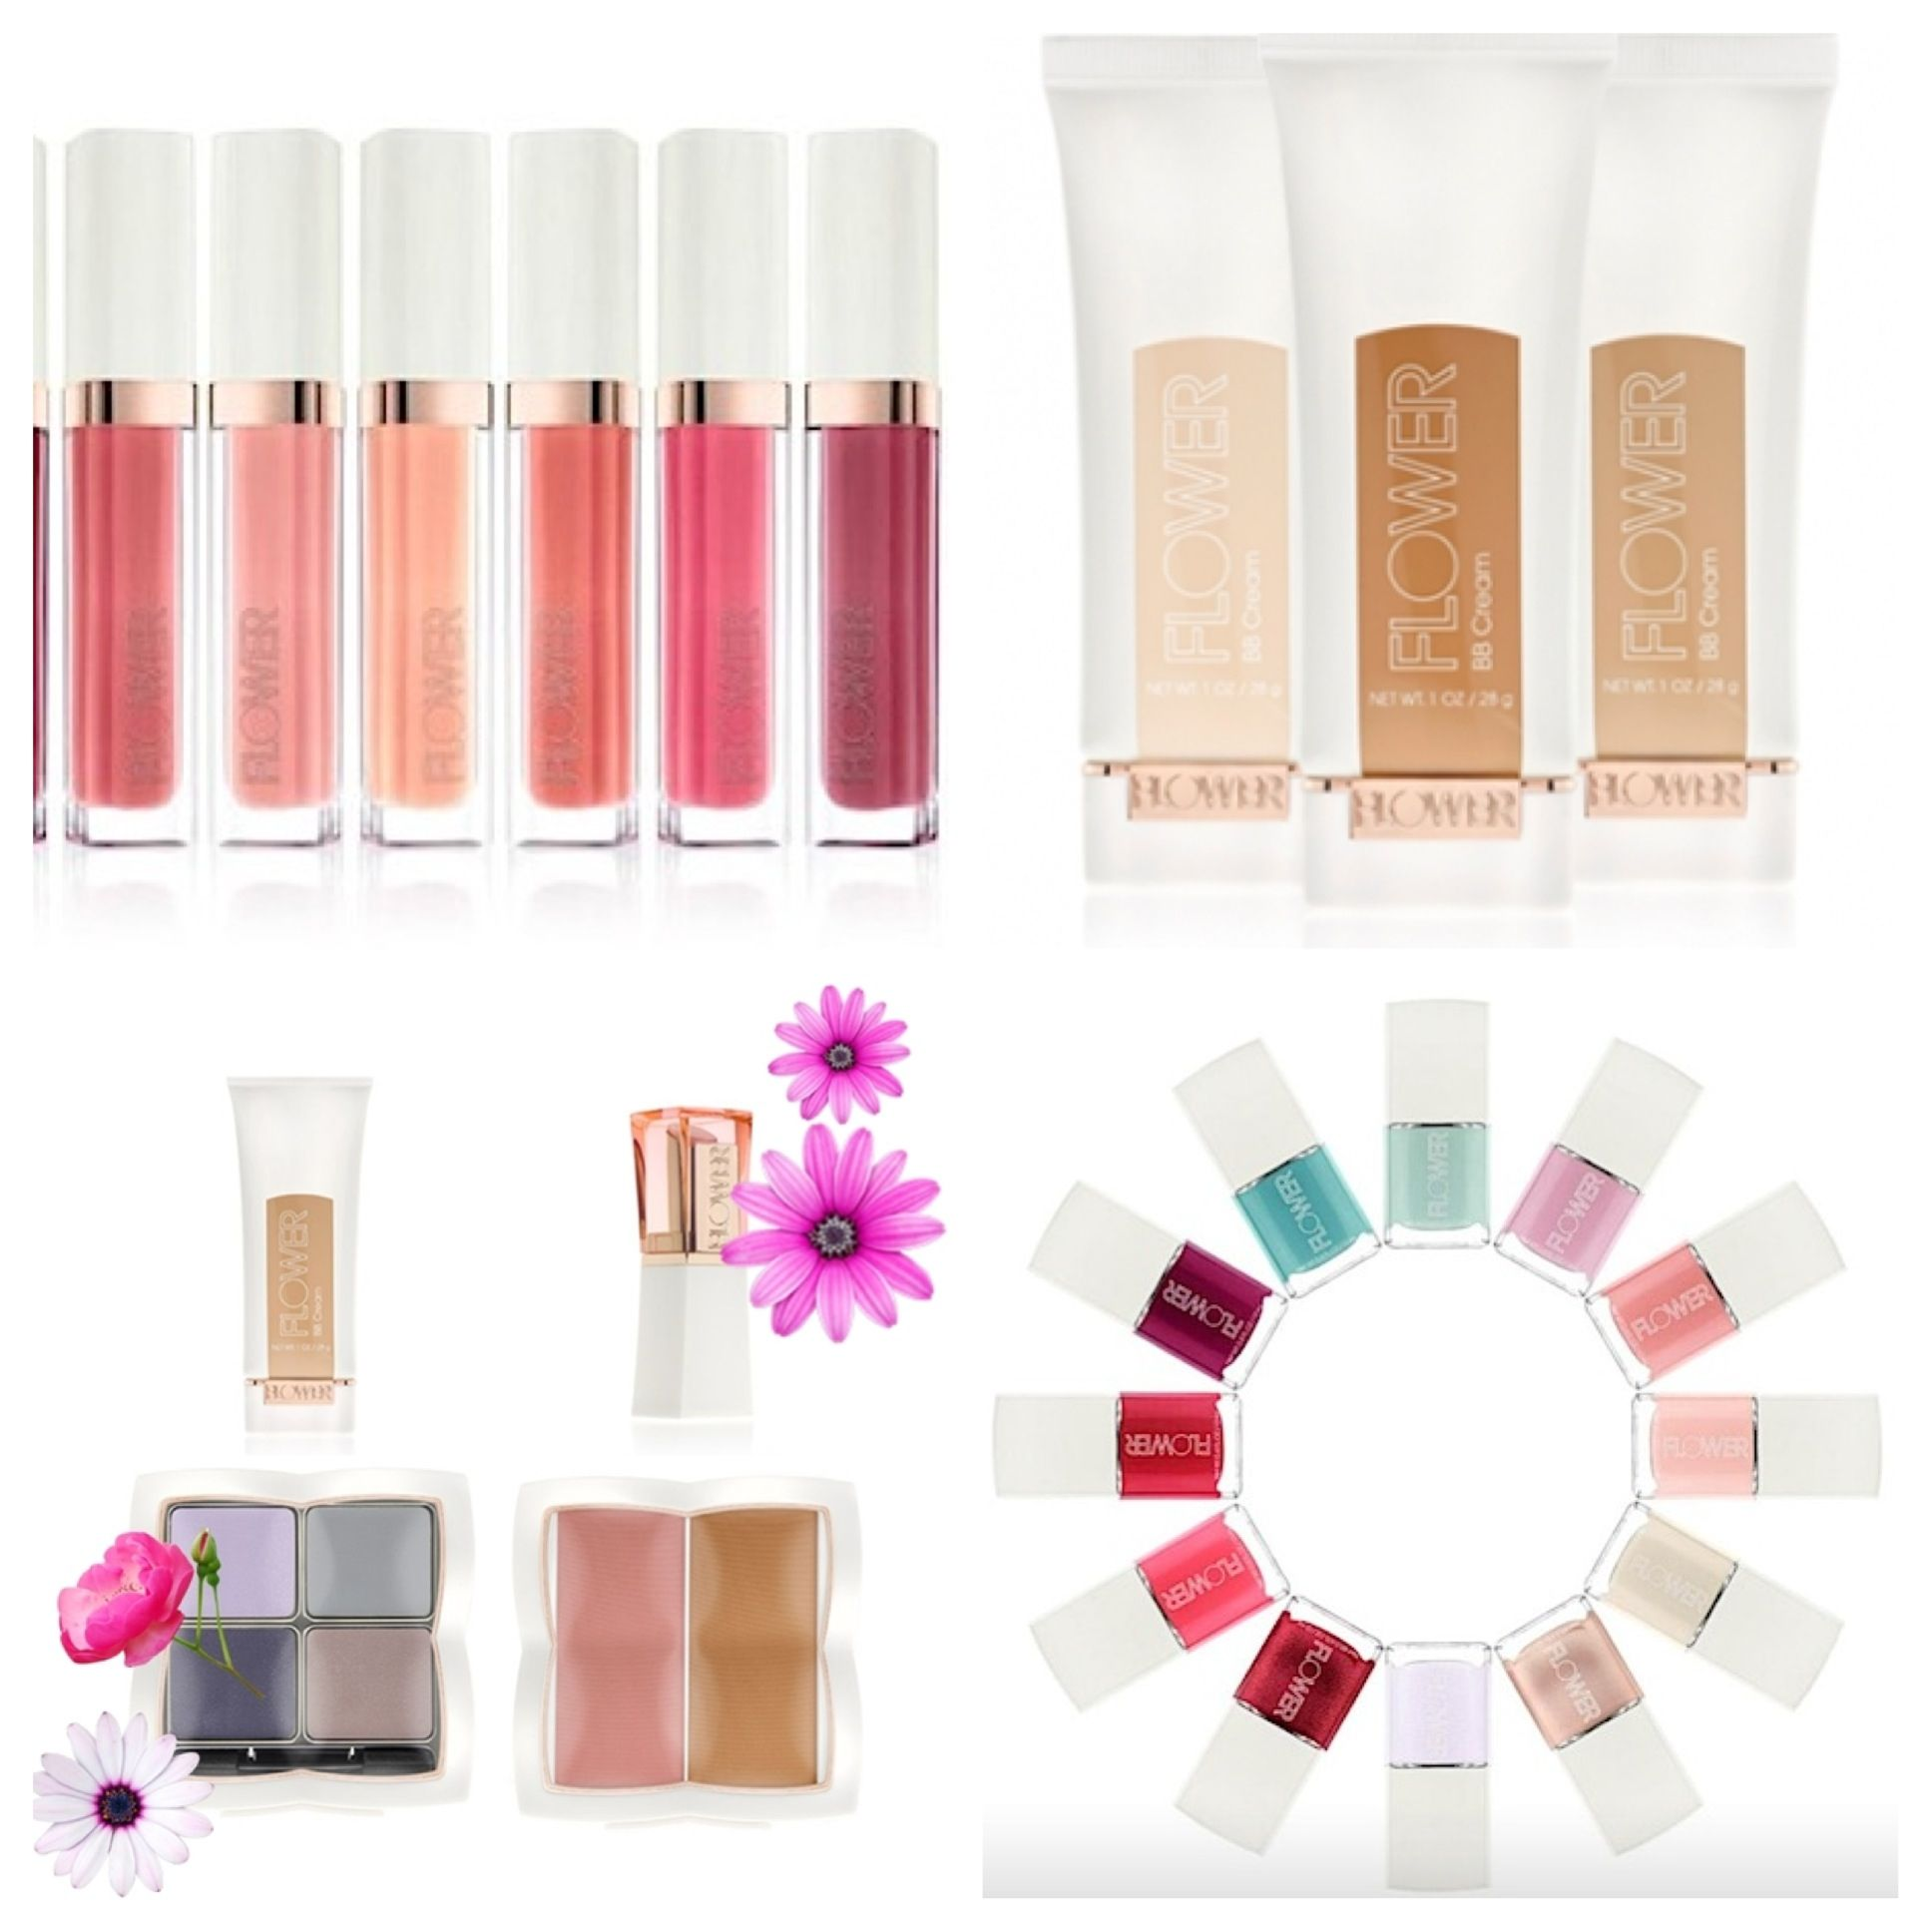 Flower beauty makeup cosmetics by drew barrymore played with all flower beauty makeup cosmetics by drew barrymore played with all of these products today izmirmasajfo Image collections